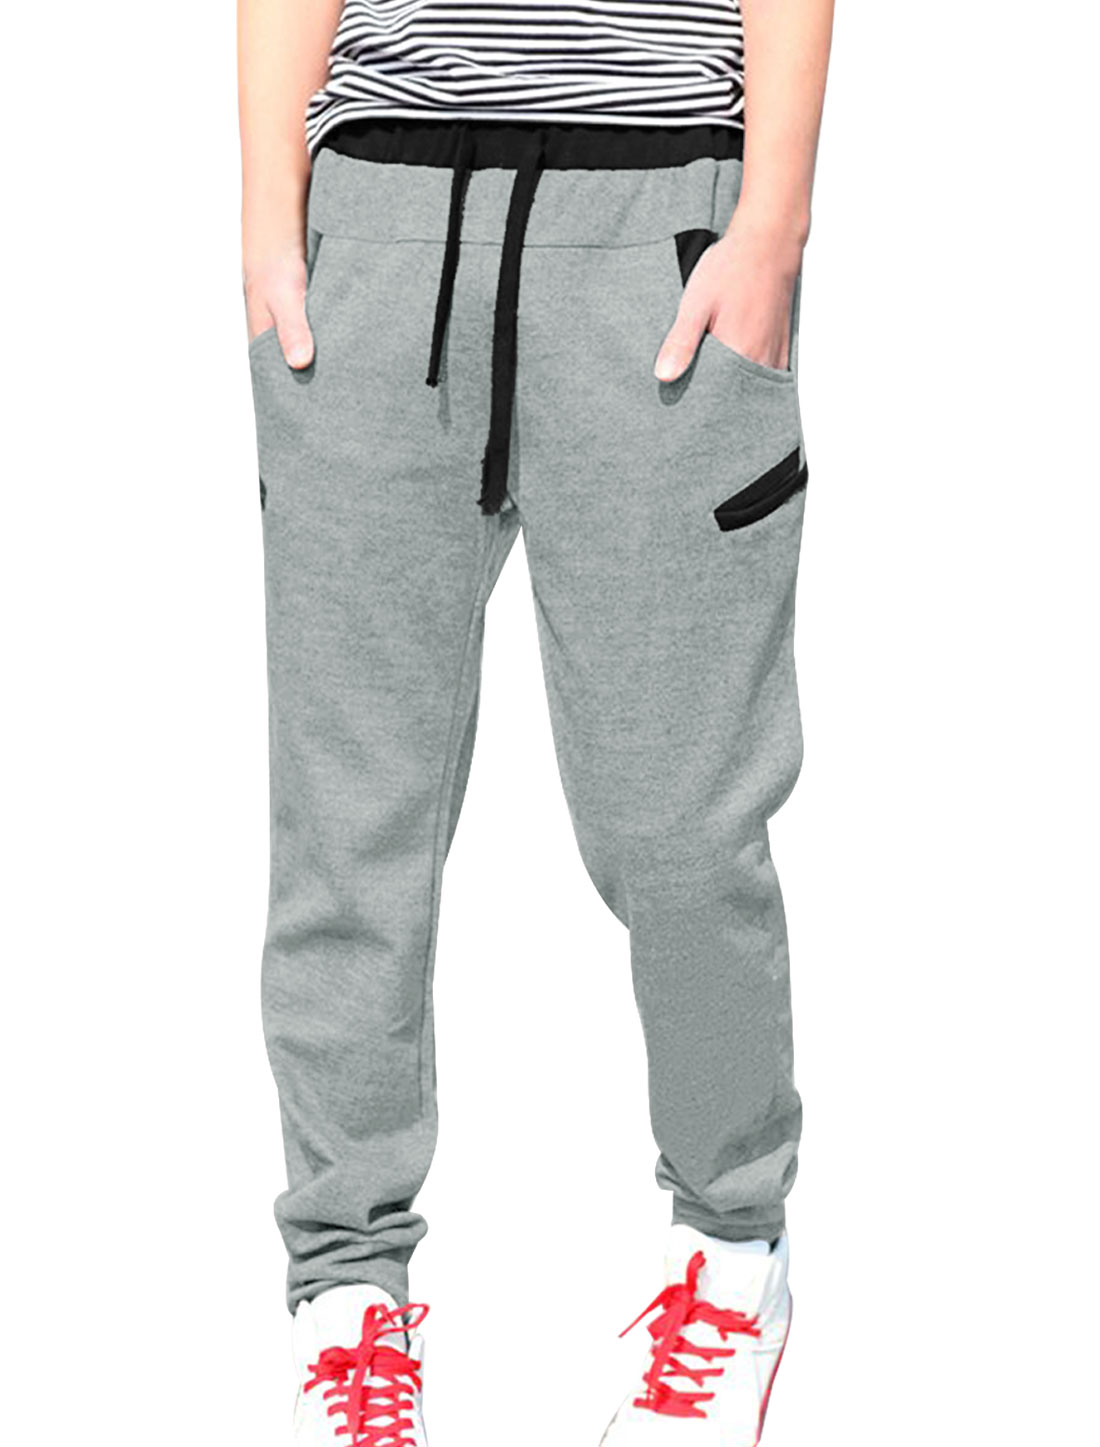 Mens Elastic Low Waist Stylish Color Patch Light Gray Sweatpants W32